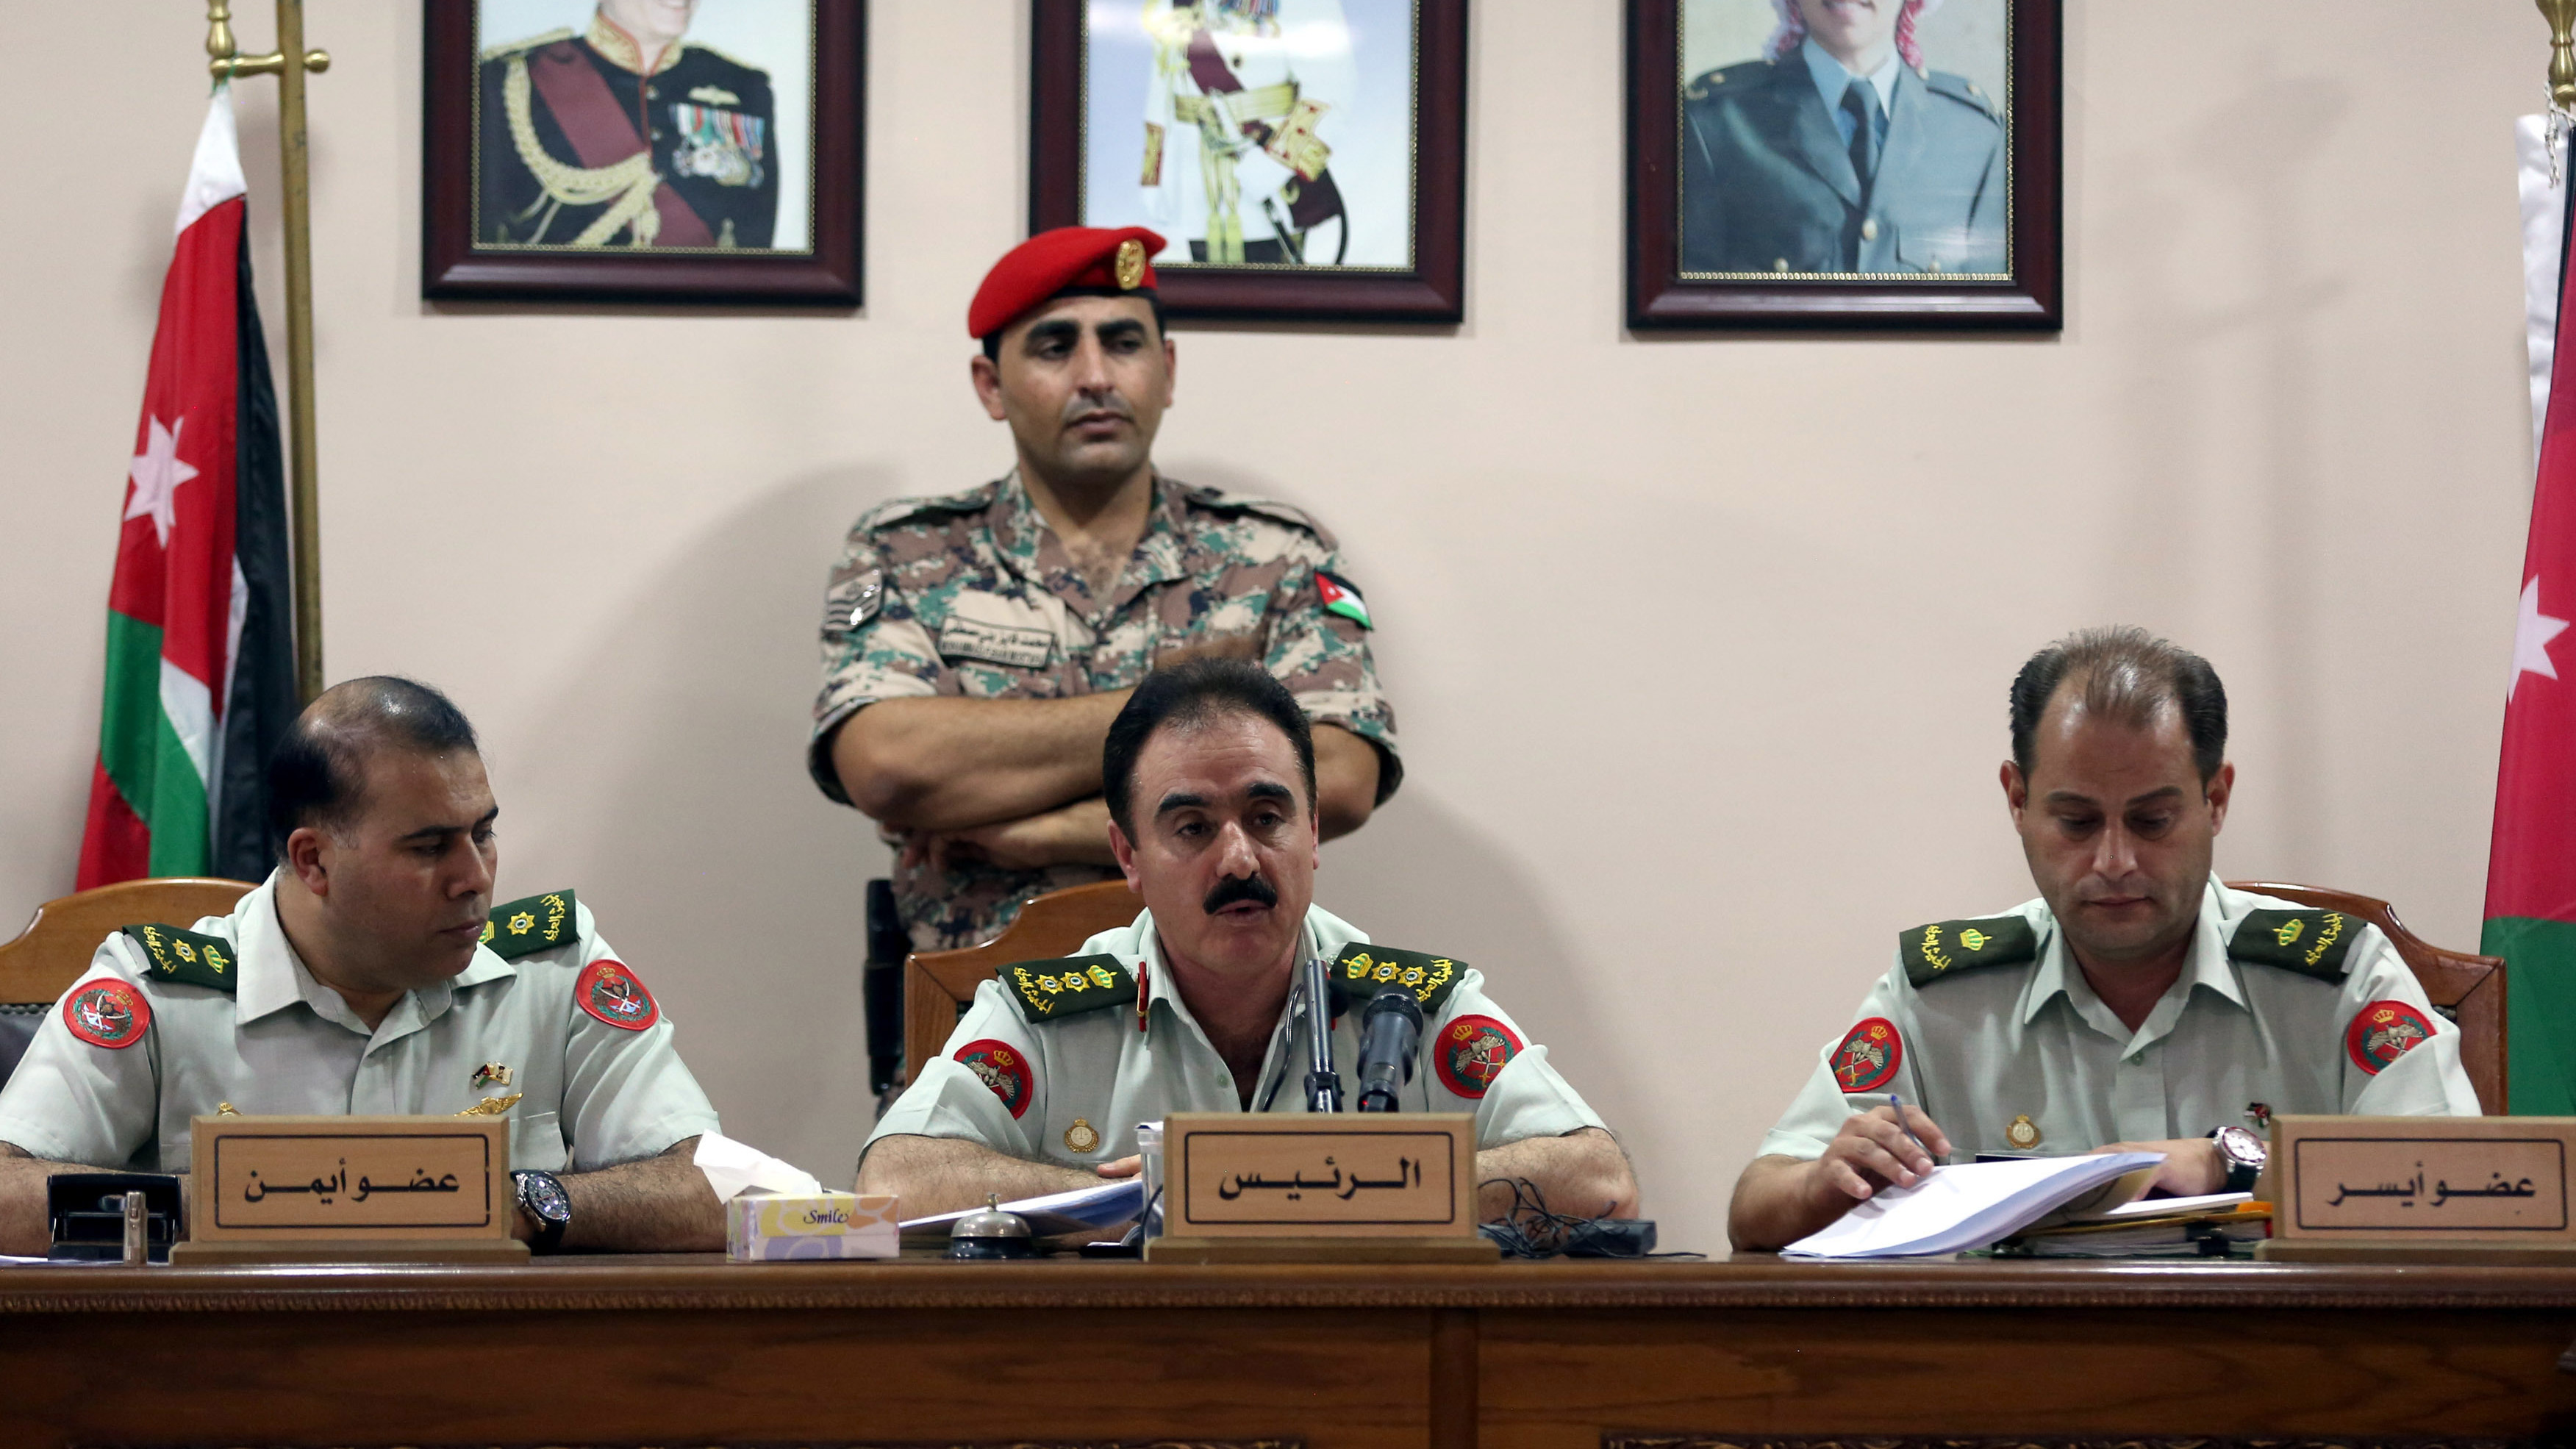 Jordanian judges preside over the trial on Monday of Marik al-Tuwayha, charged with the murder of three American military trainers. The military court in Amman found Tuwayha guilty of shooting the trainers as they waited to enter the King Faisal base at Al-Jafr in southern Jordan in November 2016.